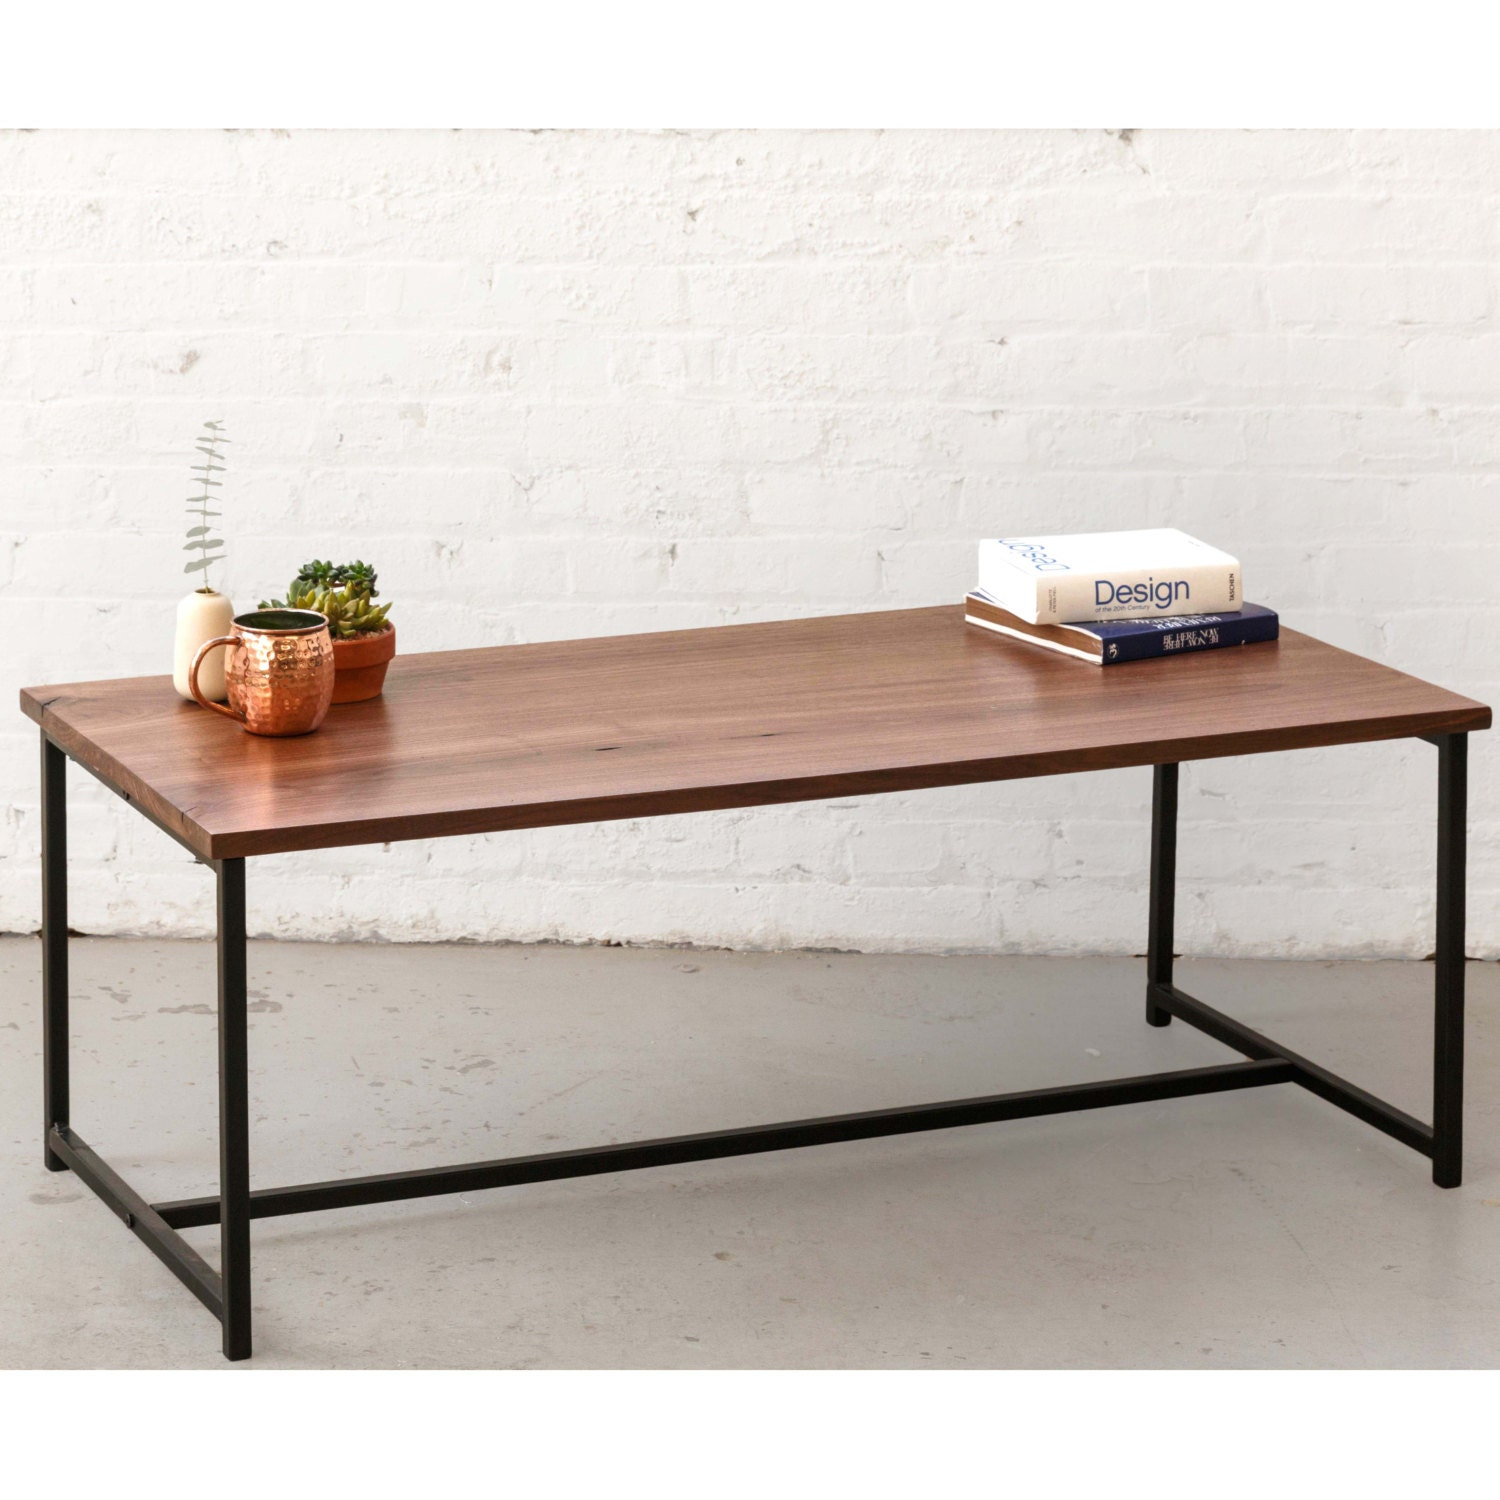 Fabricated Steel Coffee Table: The Flapjack Coffee Table Walnut With Black Powder Coated